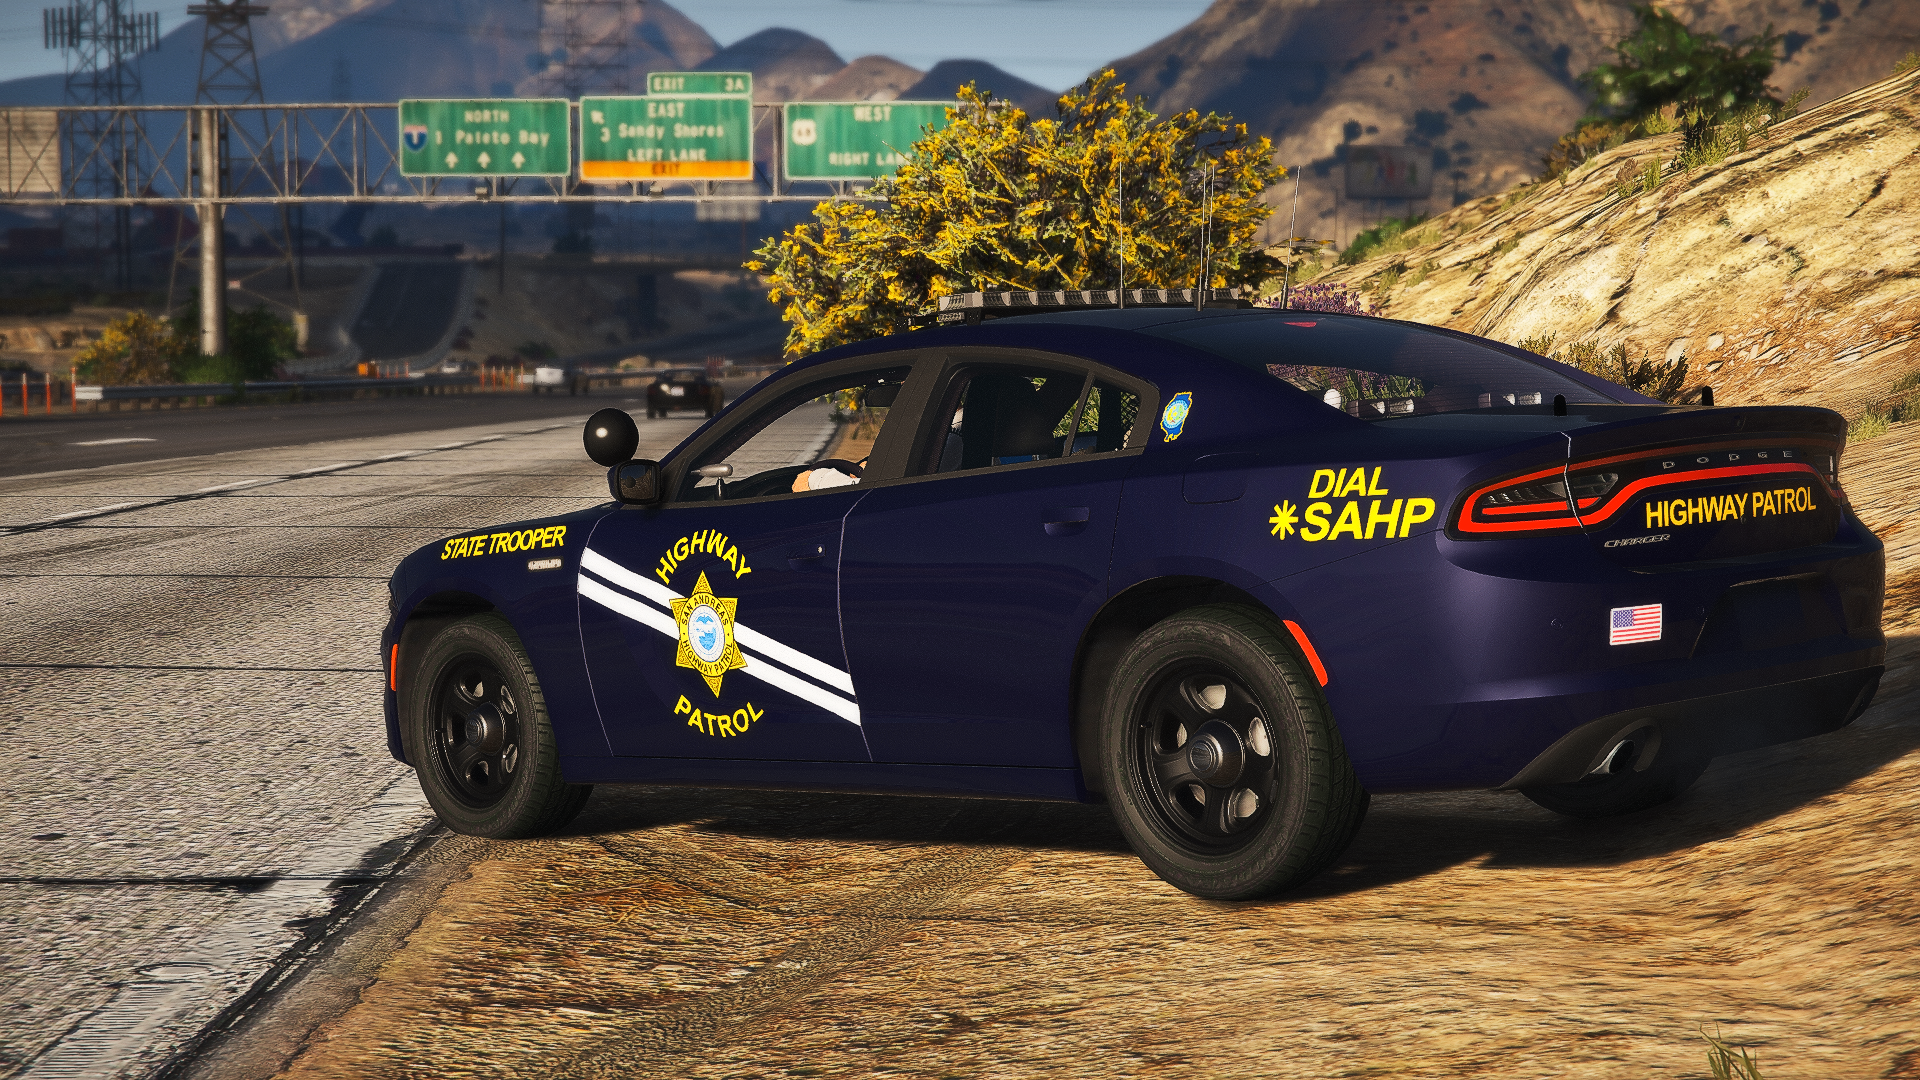 NHP Charger